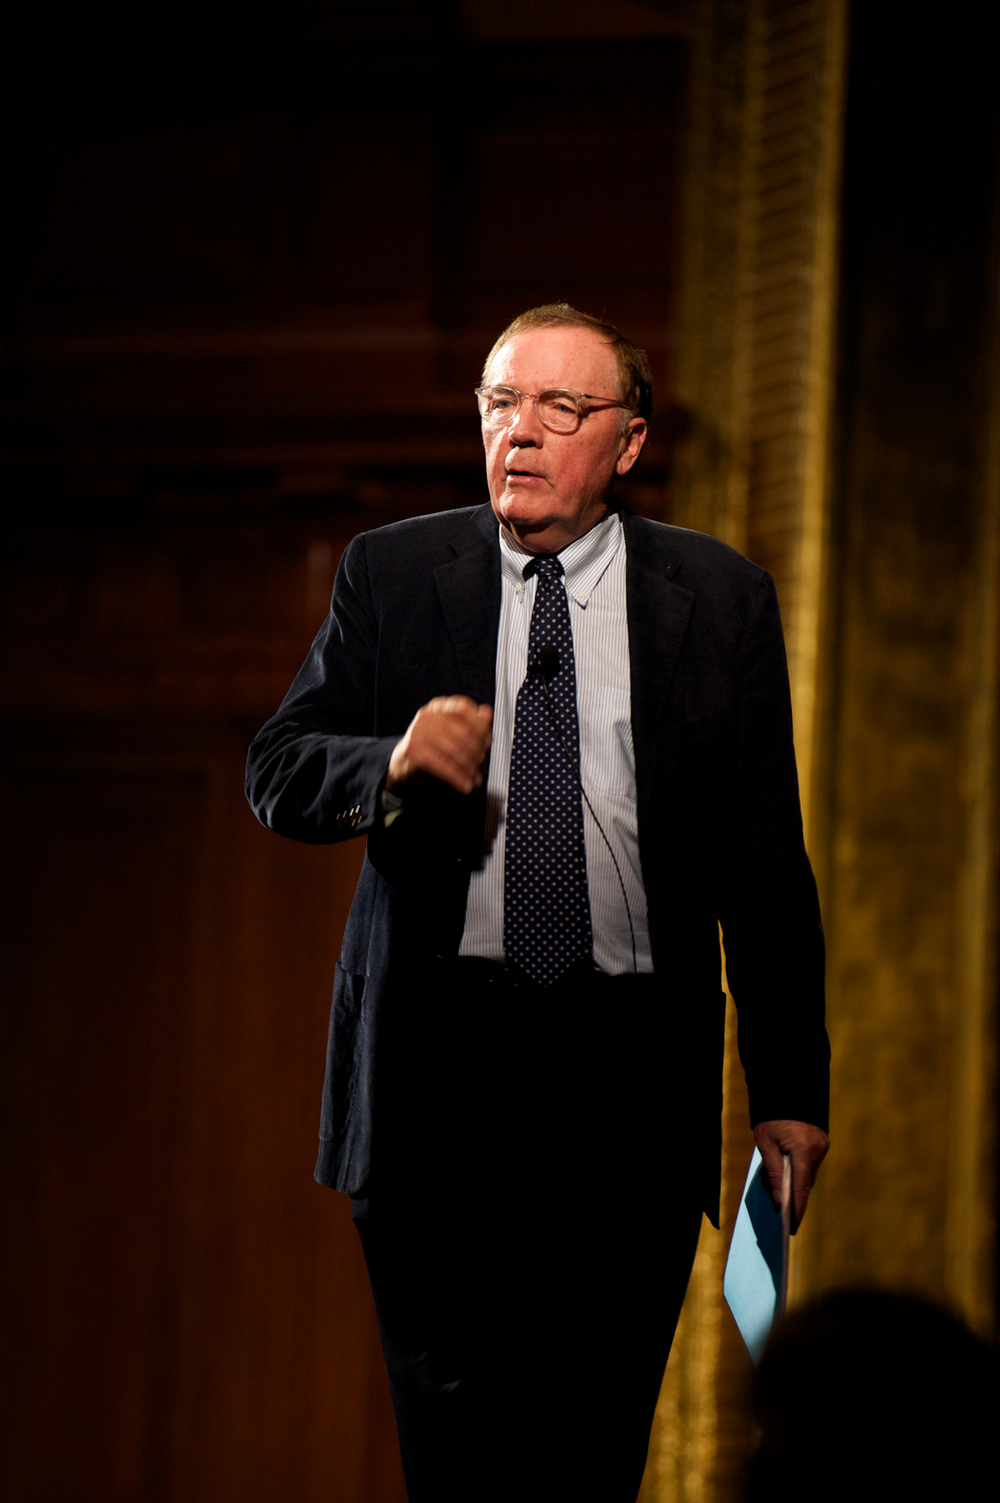 Award-Winning Author James Patterson at Bookmarks Festival in Winston-Salem, NC